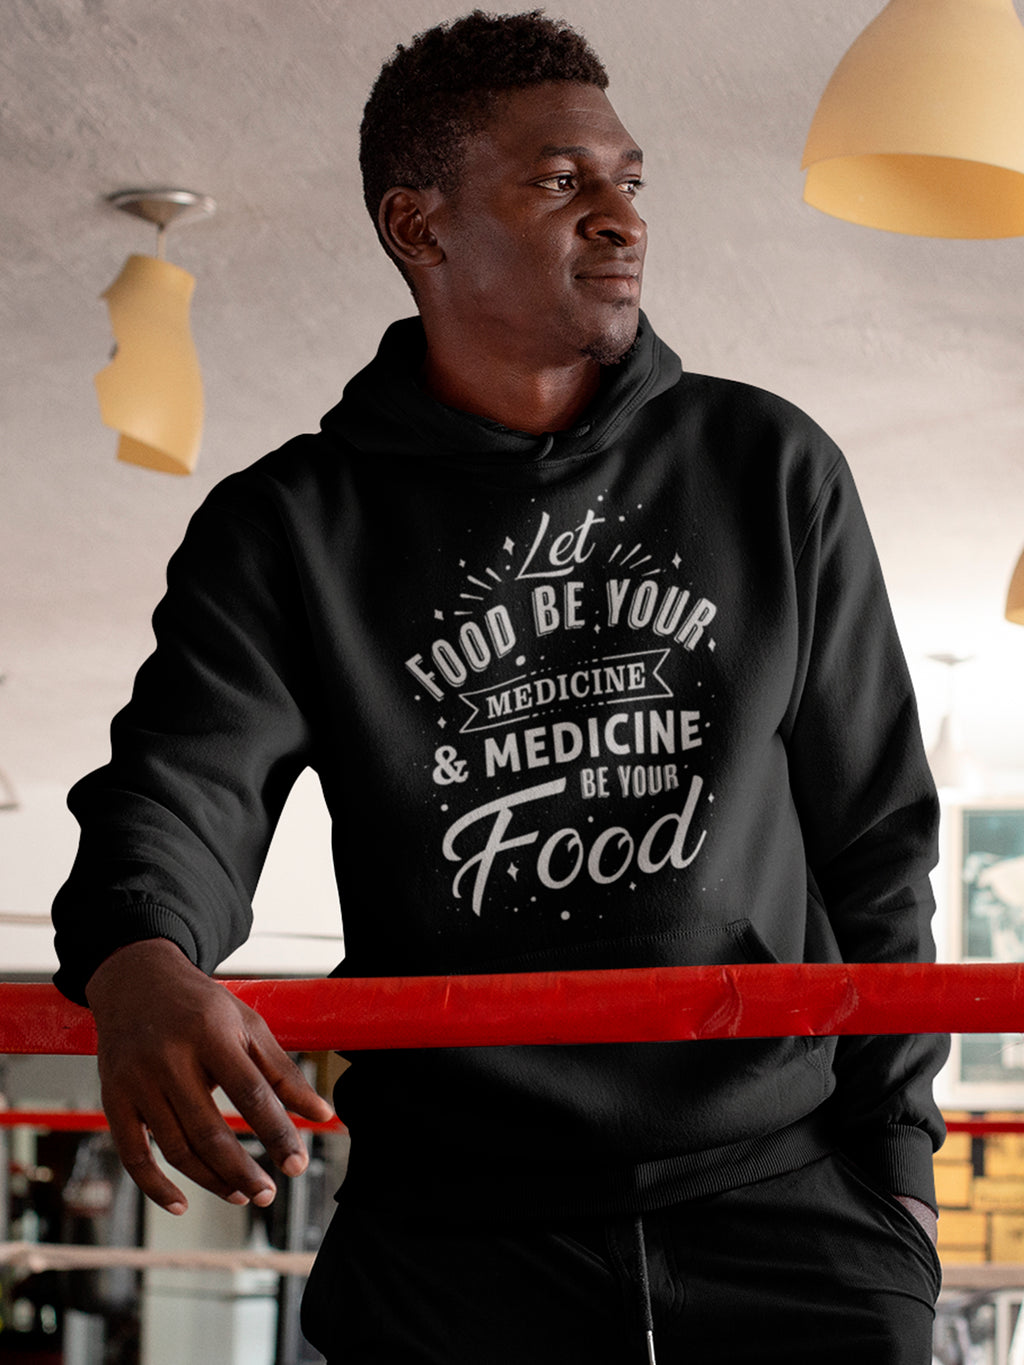 Let food be your medicine and medicine be your food hoodie